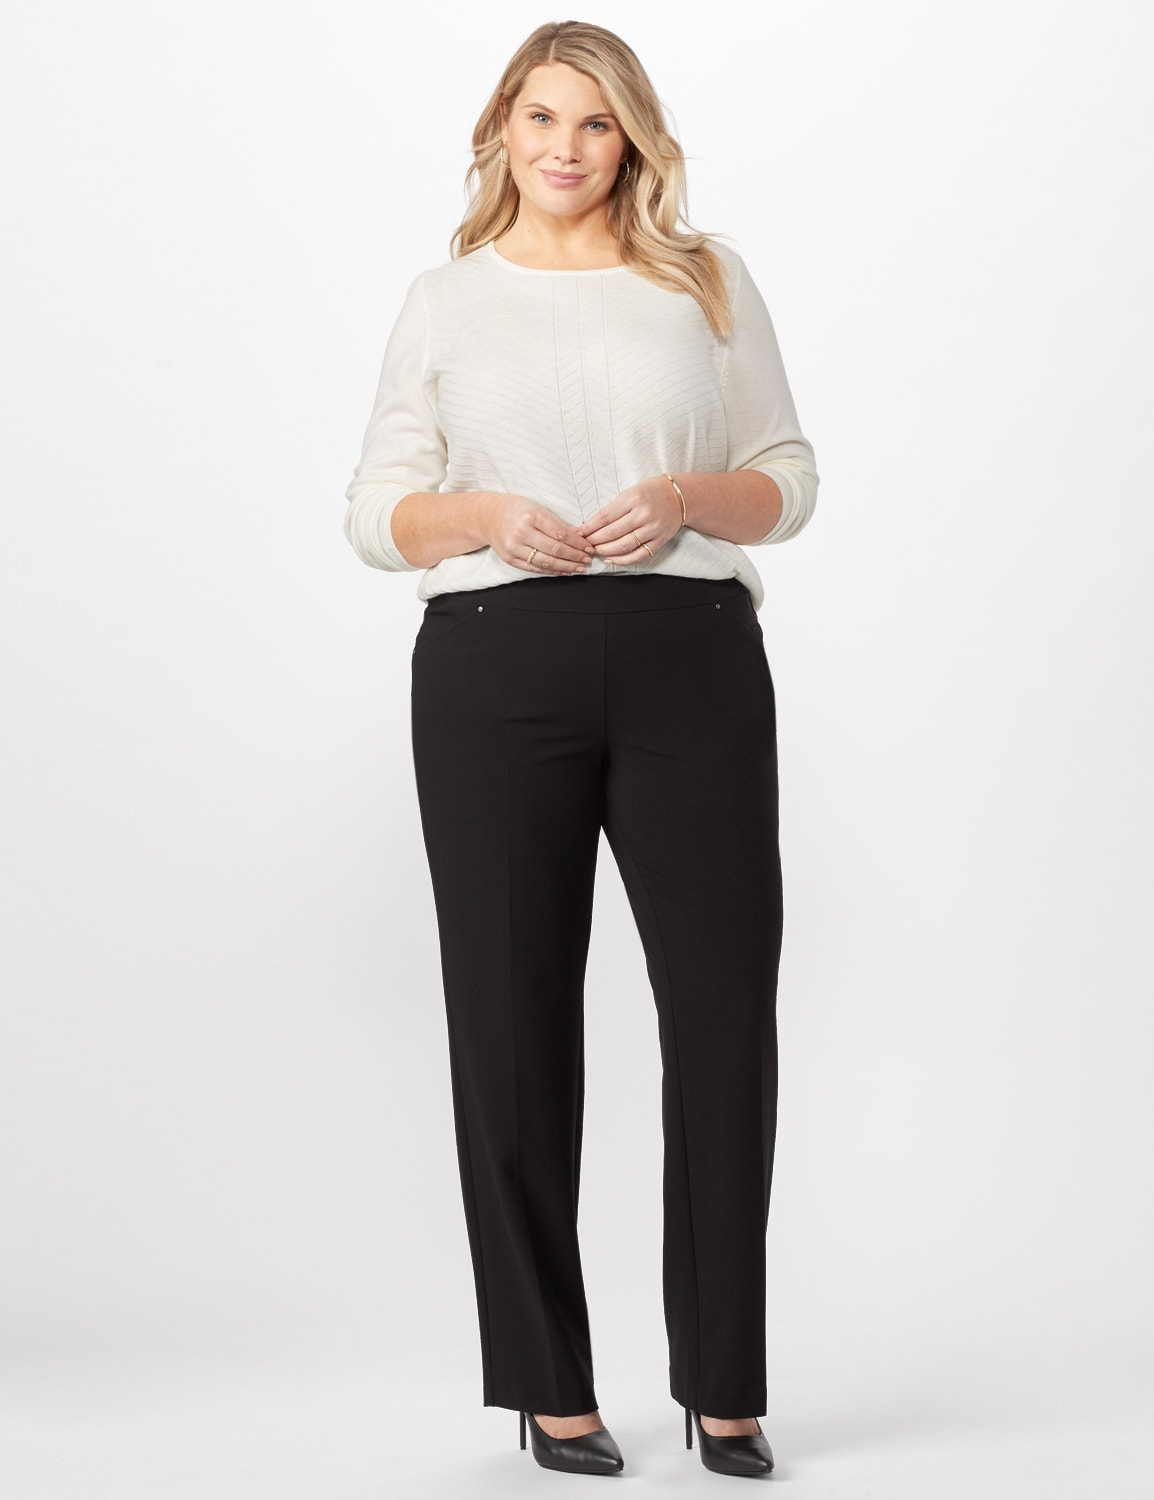 Roz & Ali Secret Agent Pull On Tummy Control Pants - Short Length - Plus - Black - Front